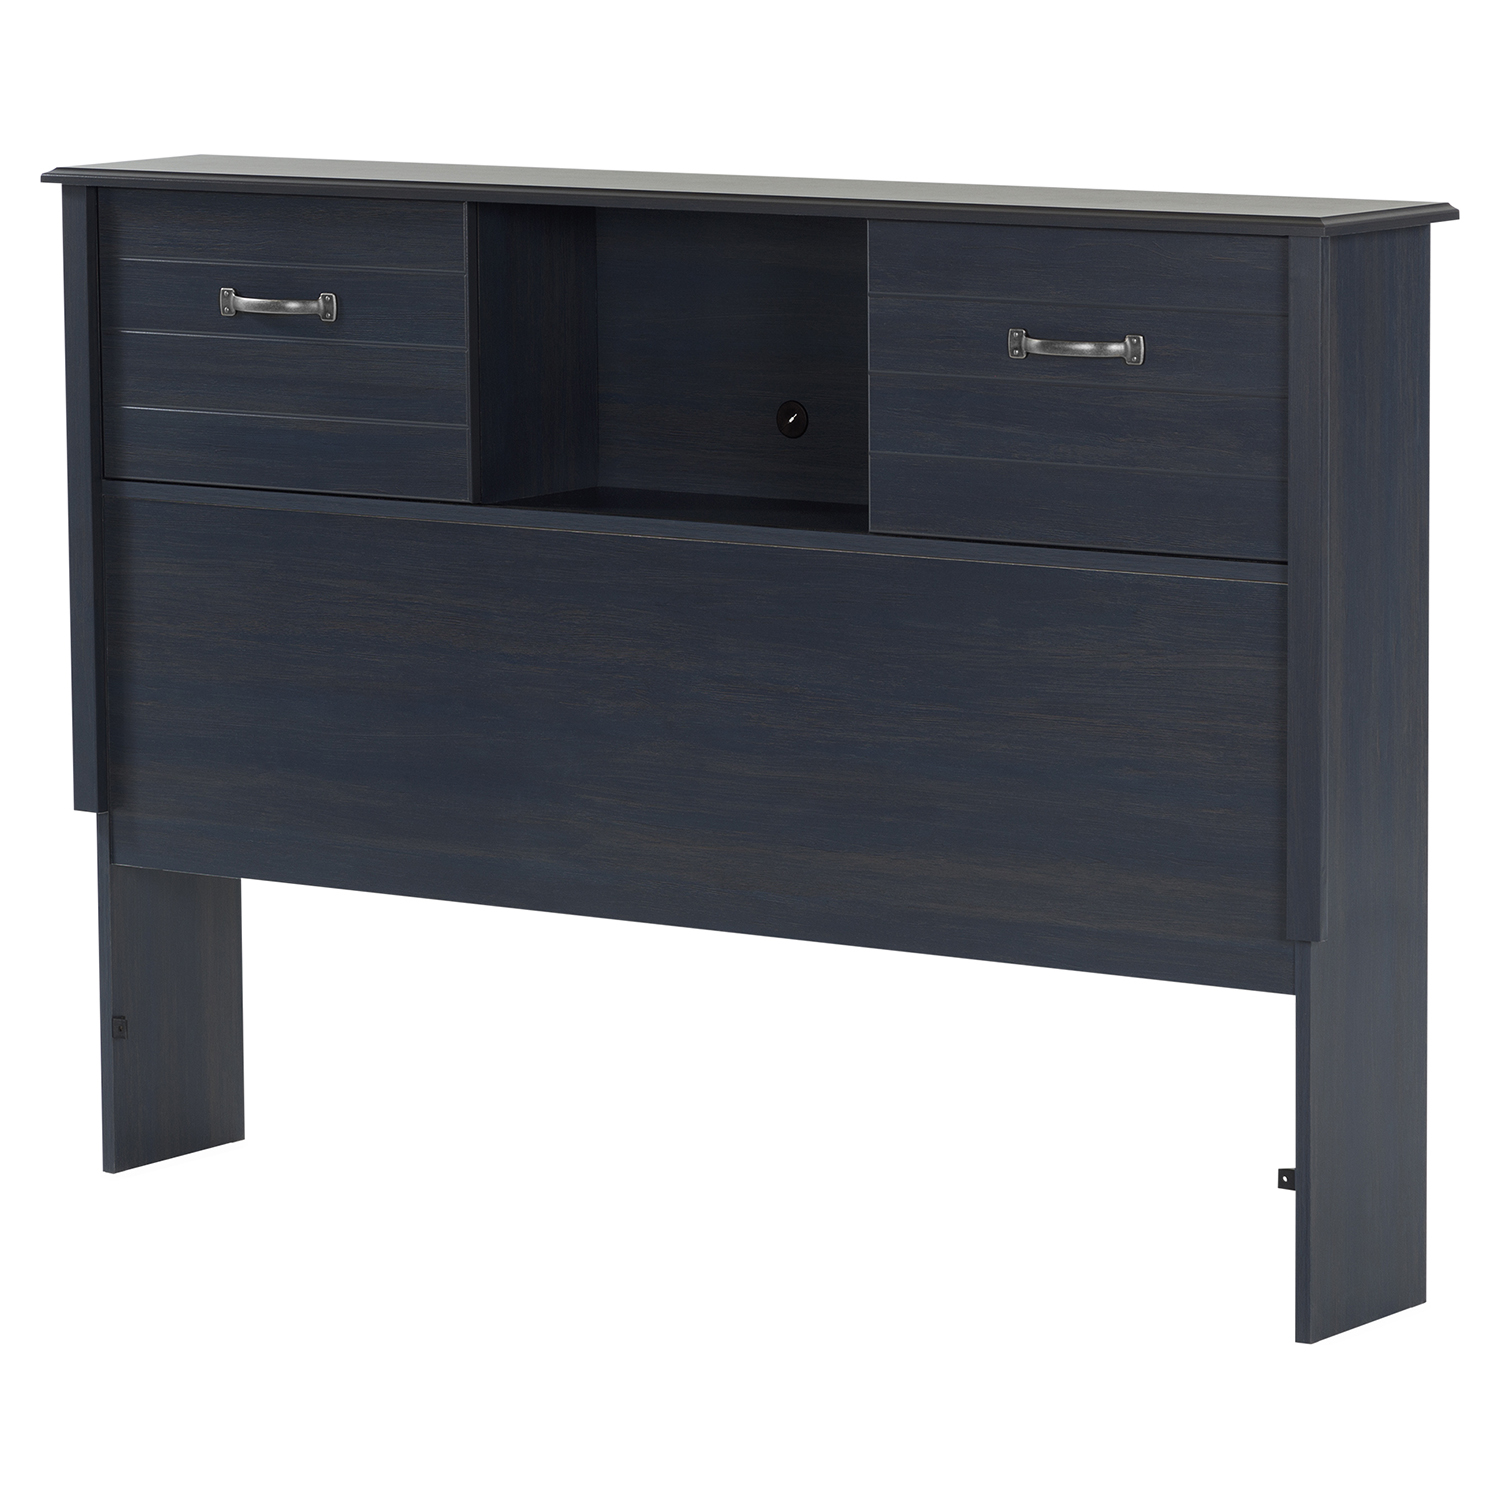 Ulysses Full Mates Bedroom Set - 3 Drawers, Blueberry - SS-1036-F